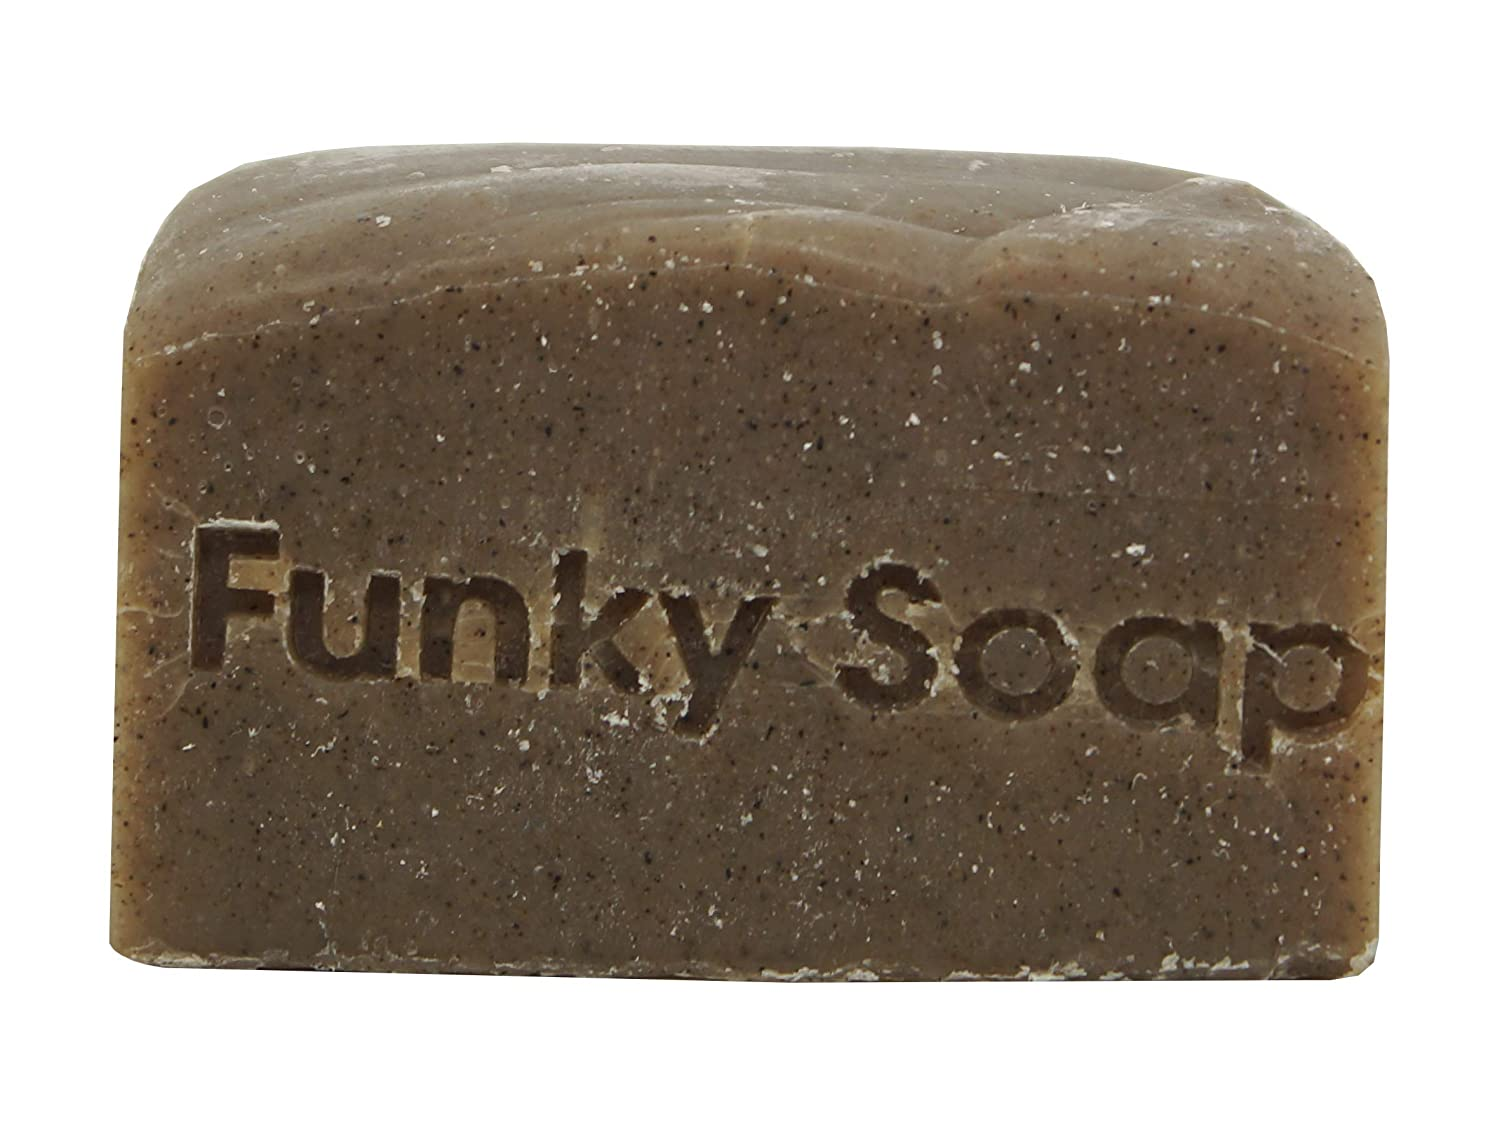 Funky Soap Algas Marinas y Rhassoul Clay Champú 100% Natural Hecho a Mano, 1 Barra de 120g